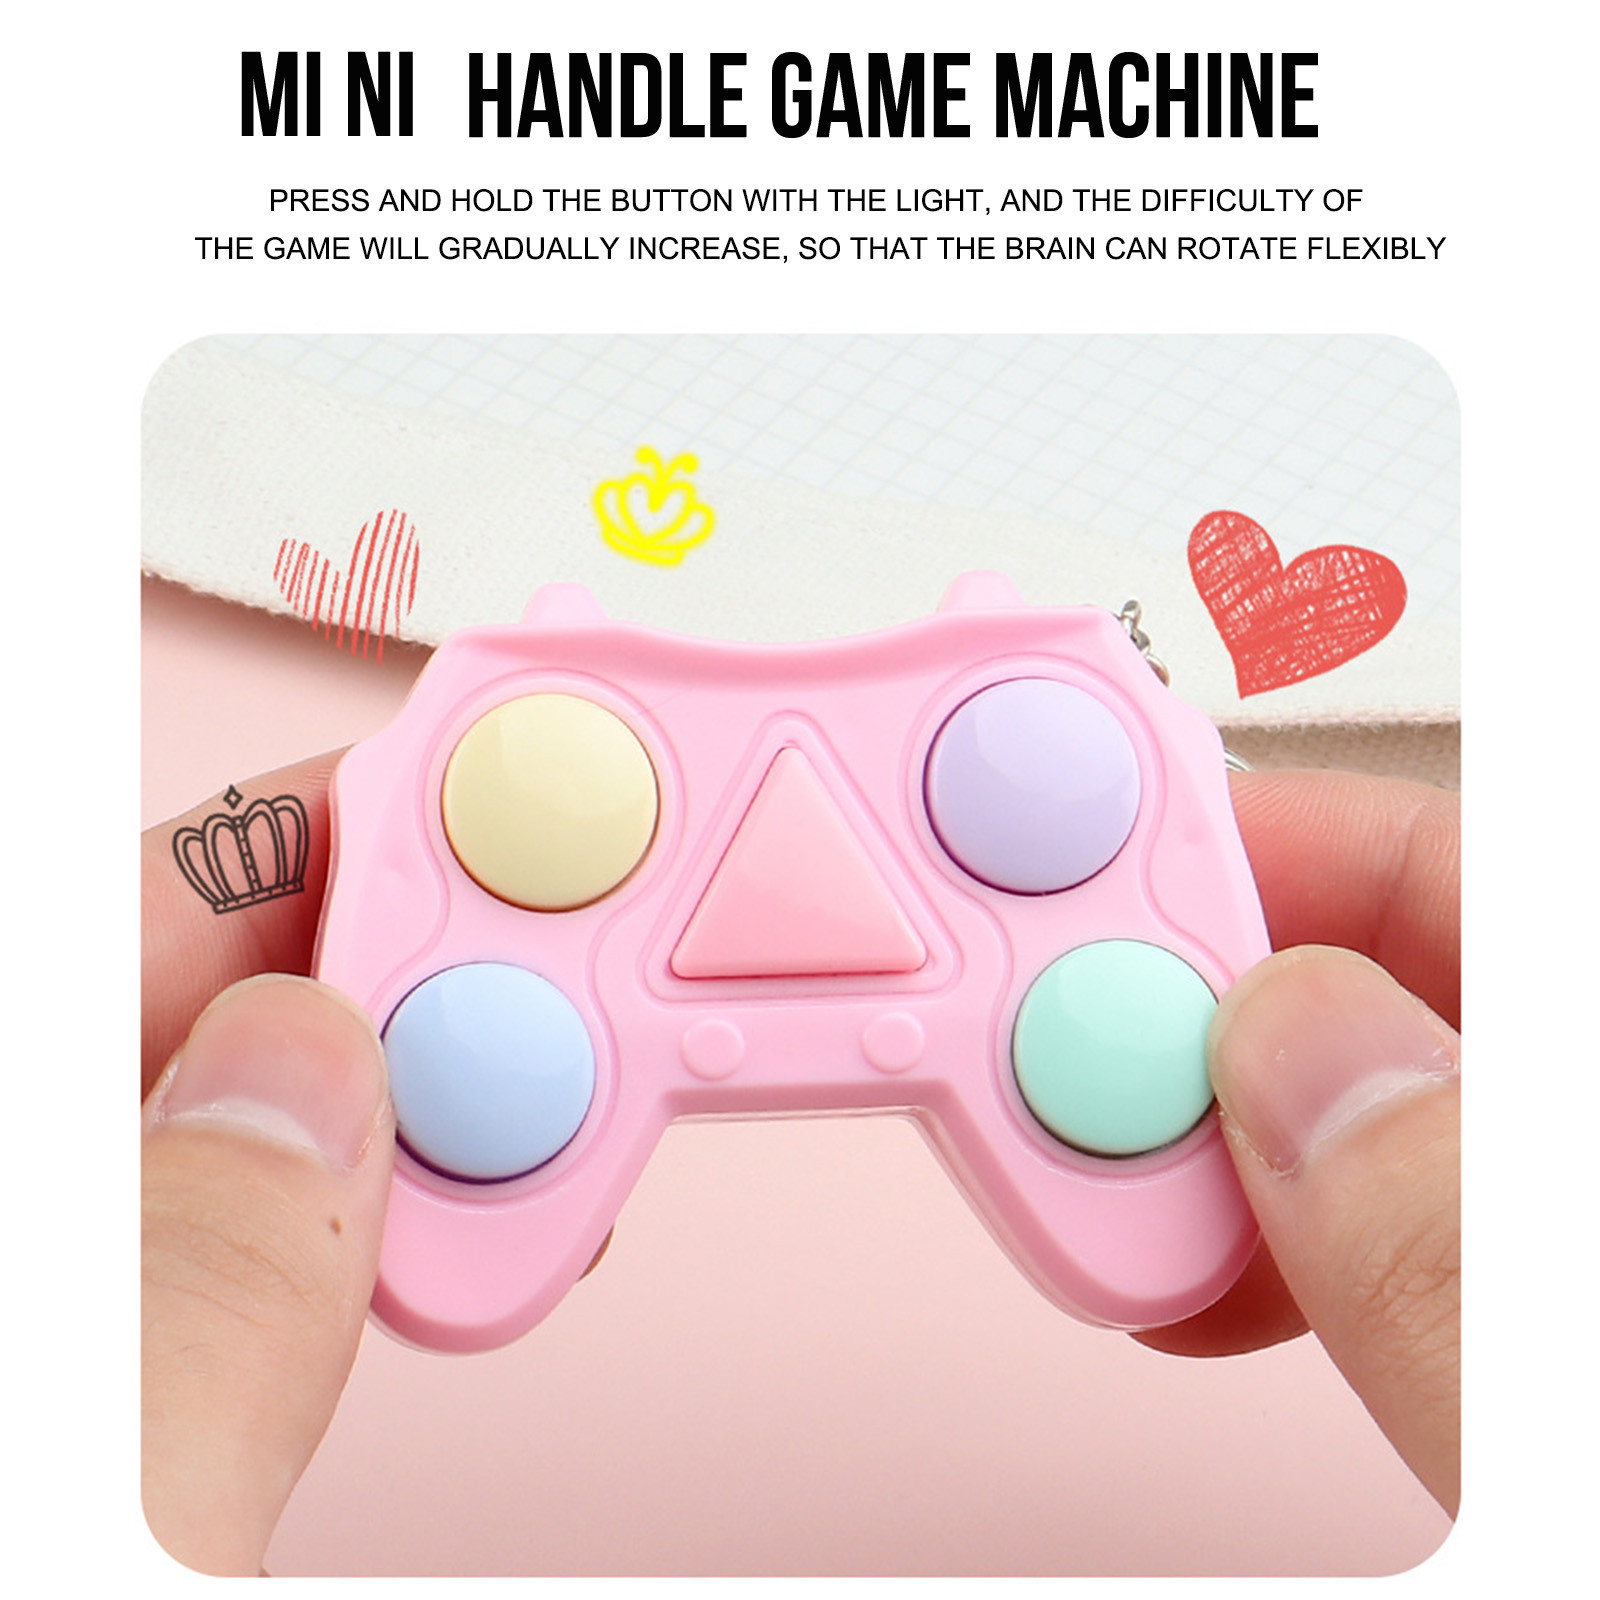 Figet Toy Keychain Memory-Stress Dimple Mini Handle Small Game Early-Educational Electronic img4